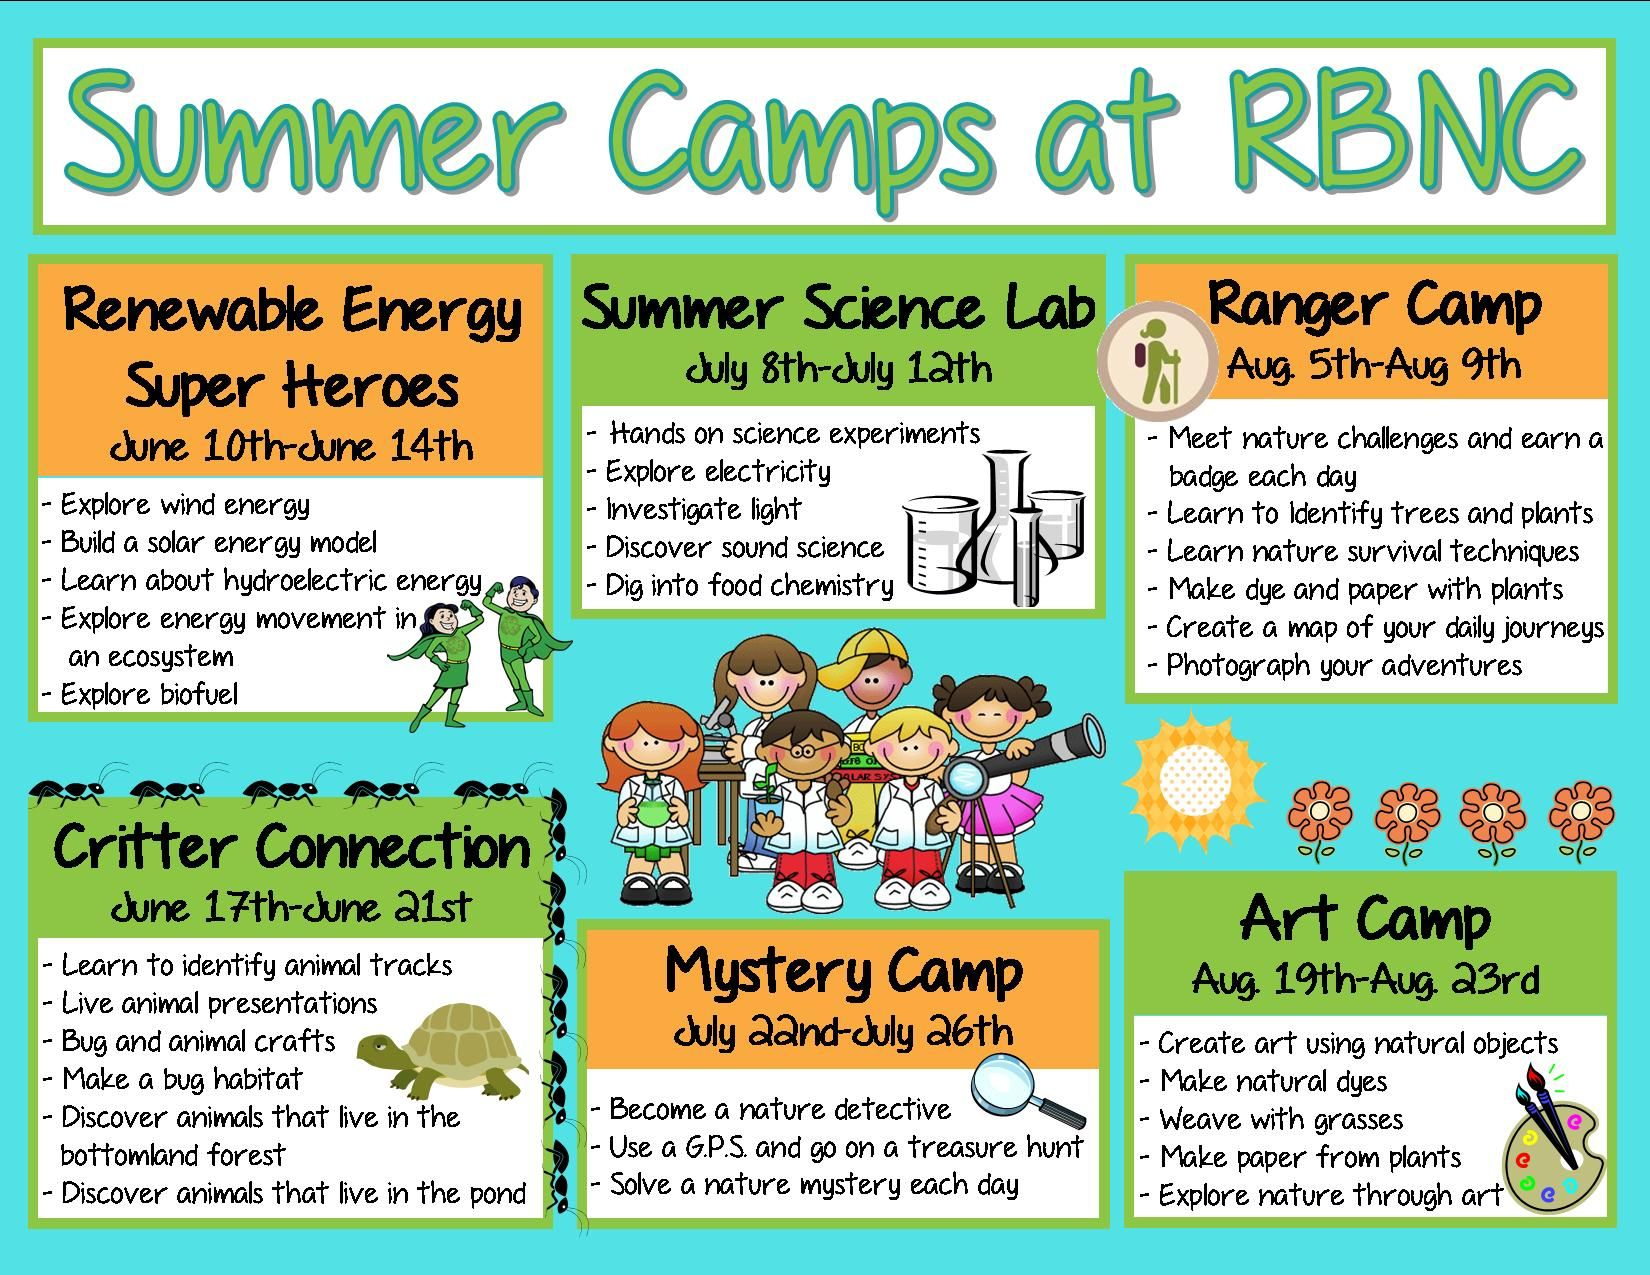 10 Most Popular Ideas For Summer Camp Themes summer camp themes summer camps for everyone at river bend kauz 3